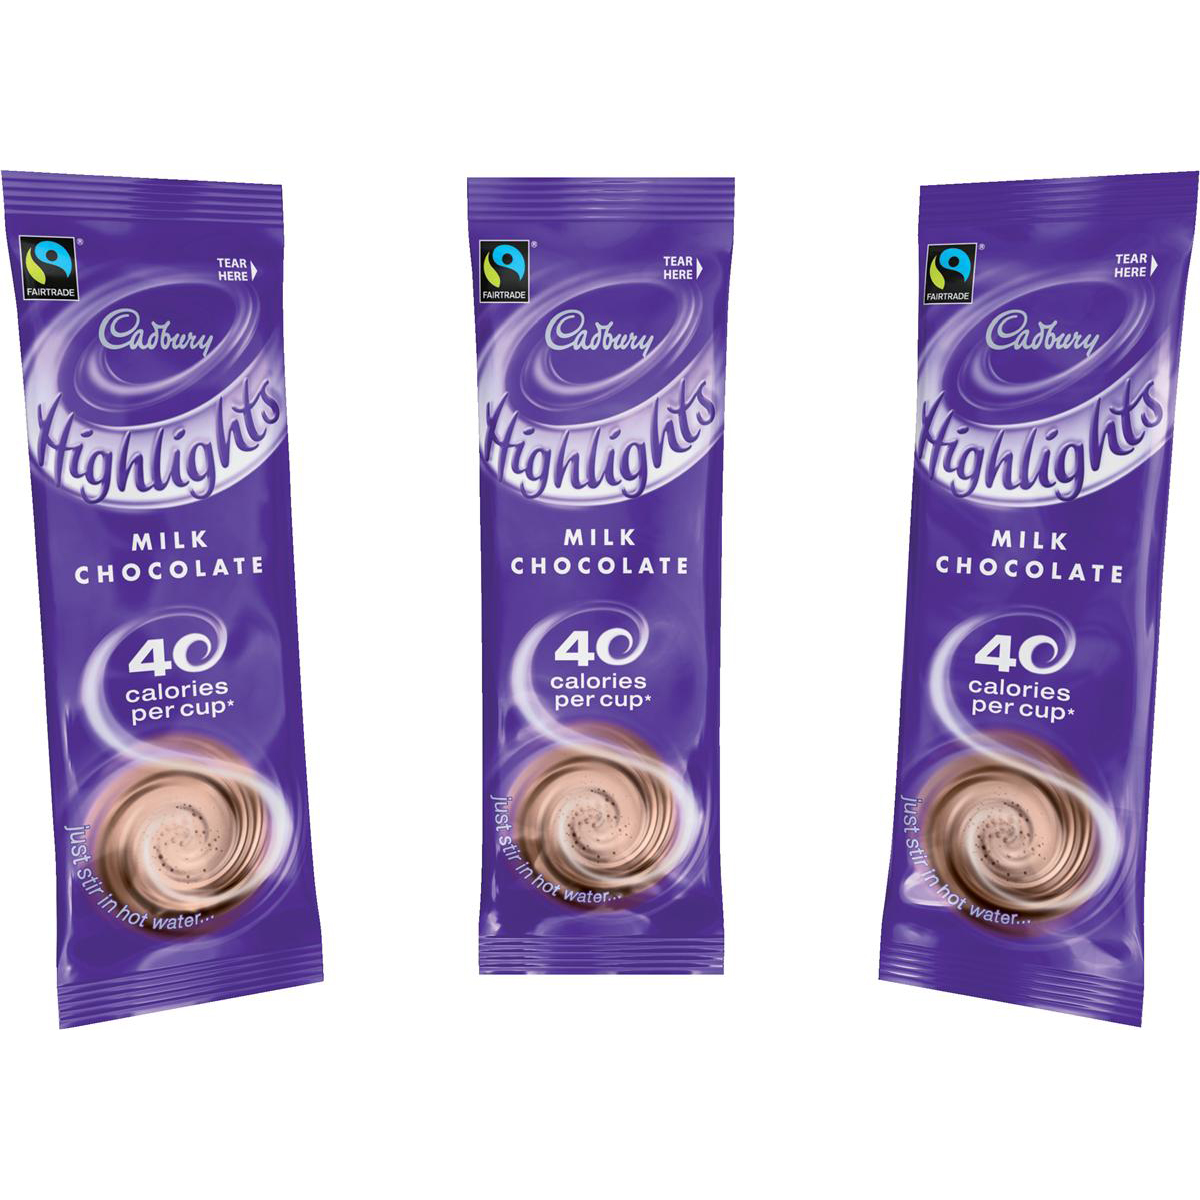 Cadbury Chocolate Highlights Fairtrade Hot Chocolate Powder Sachets Low Calorie Ref 0403173 Pack 30